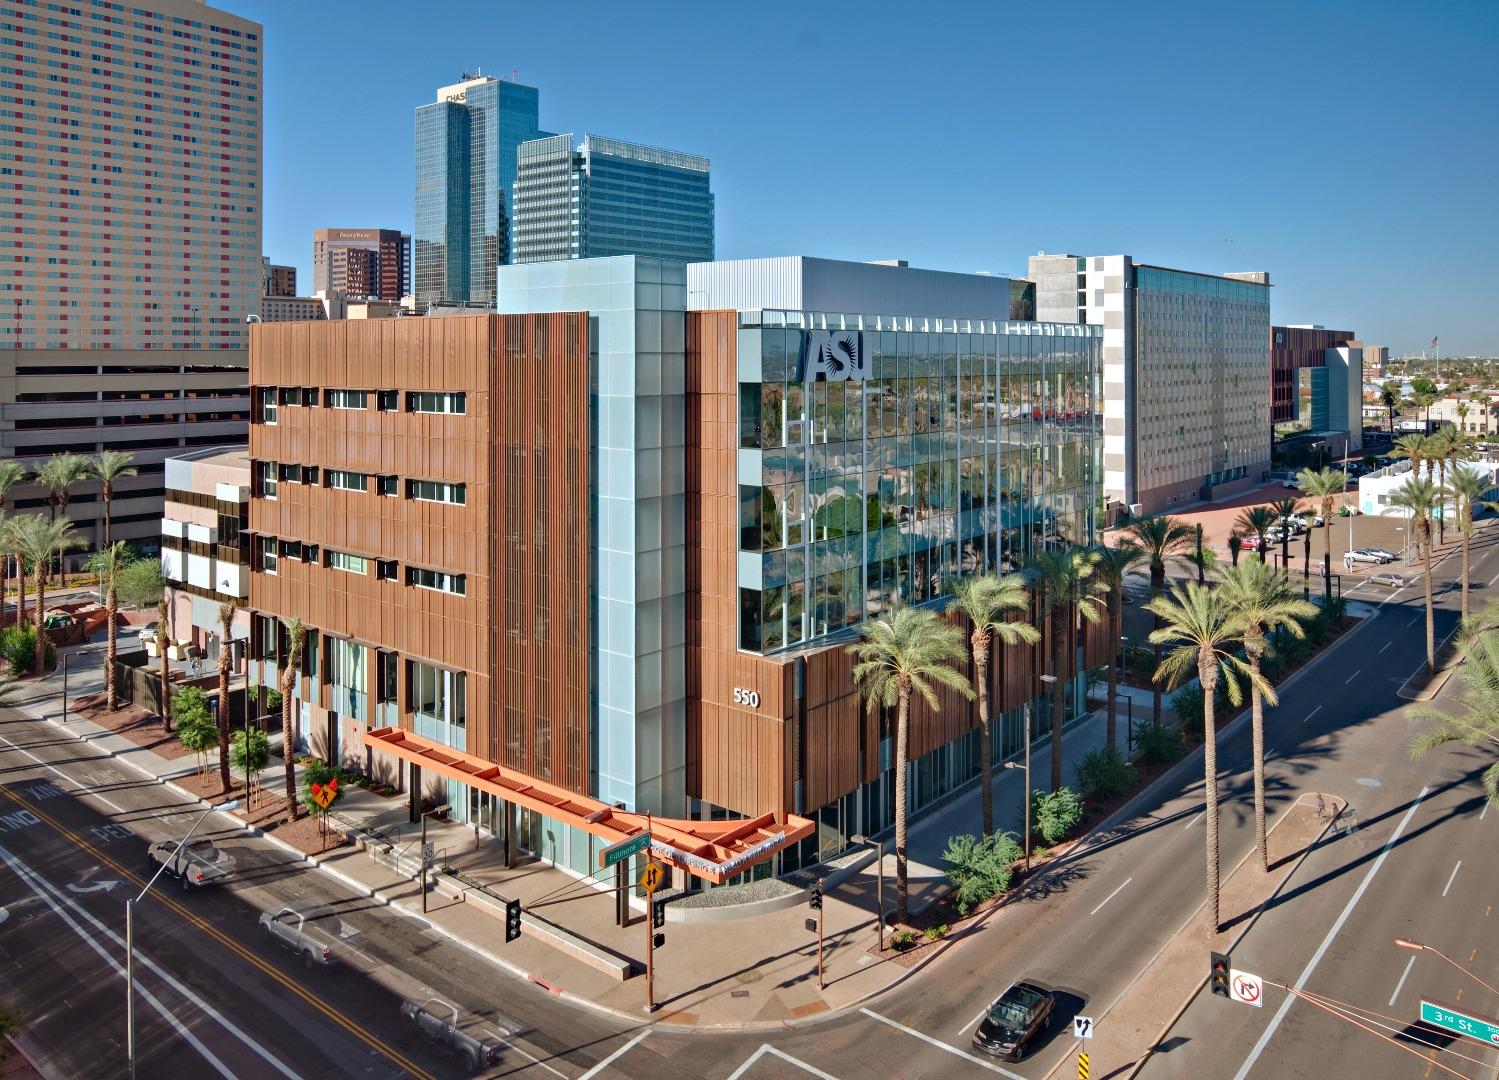 ASU's College of Nursing and Health Innovation